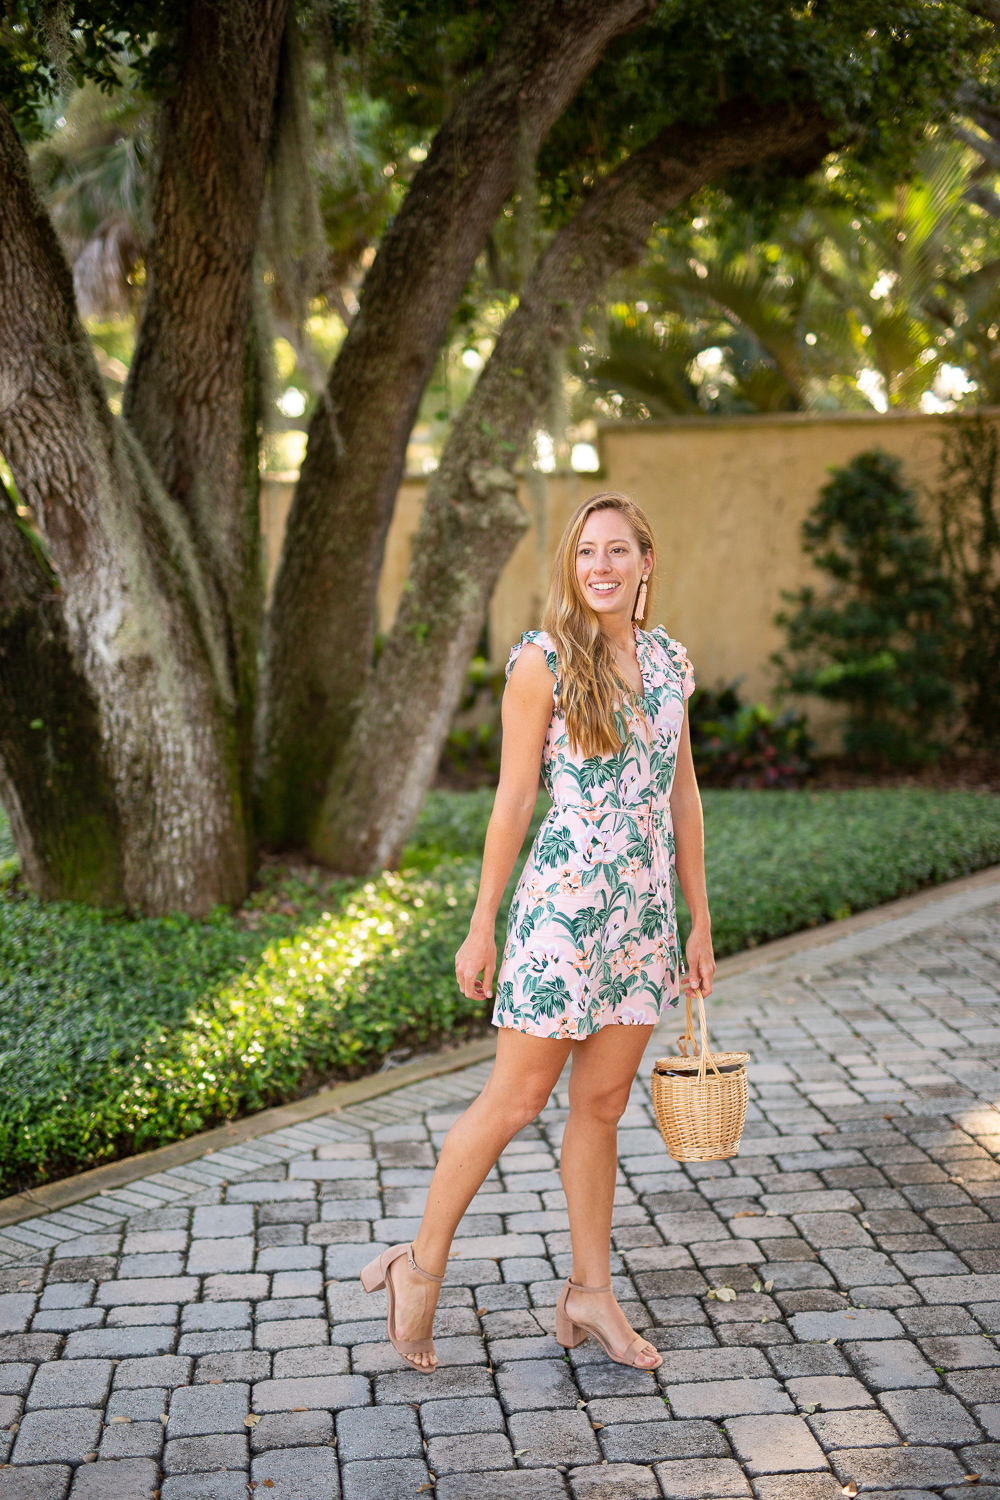 LOFT Floral Dresses to Wear to a Wedding | Sunshine Style